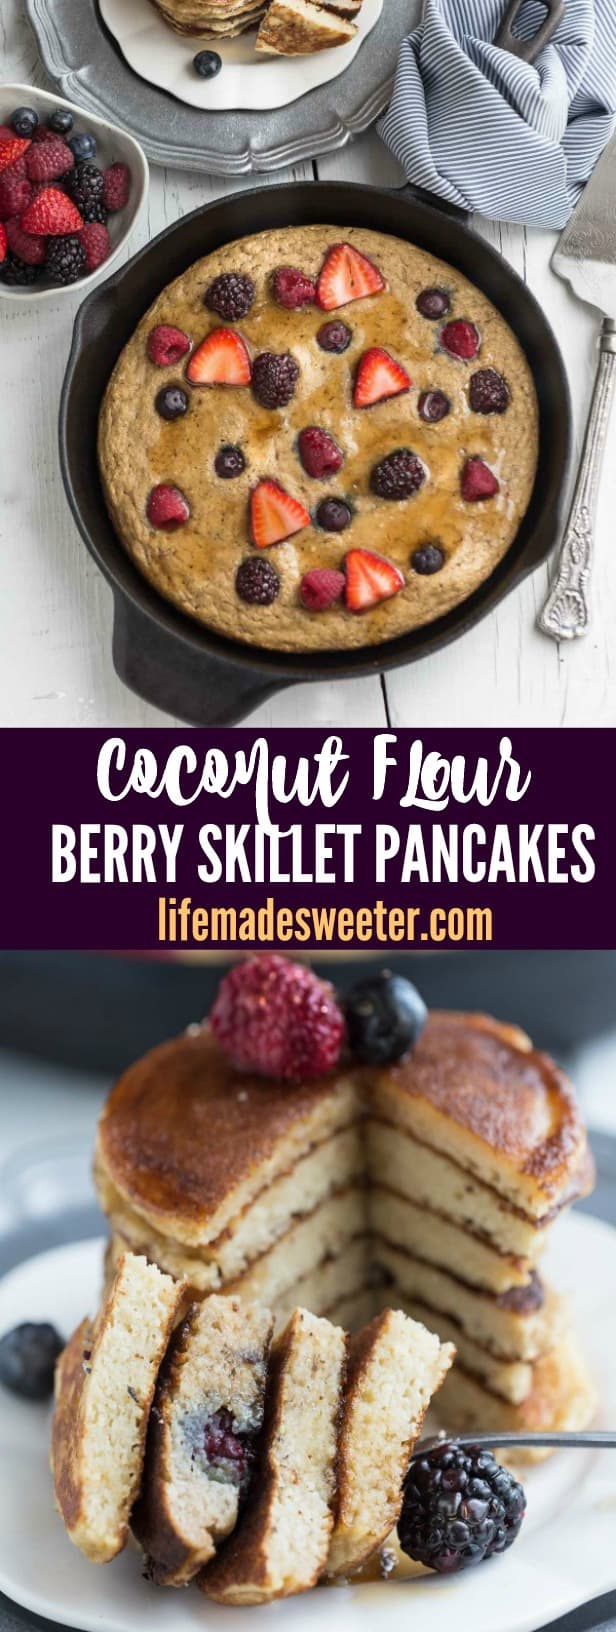 Oven Baked Coconut Flour Berry Skillet Pancakes - soft, fluffy & paleo friendly - the perfect healthy breakfast!